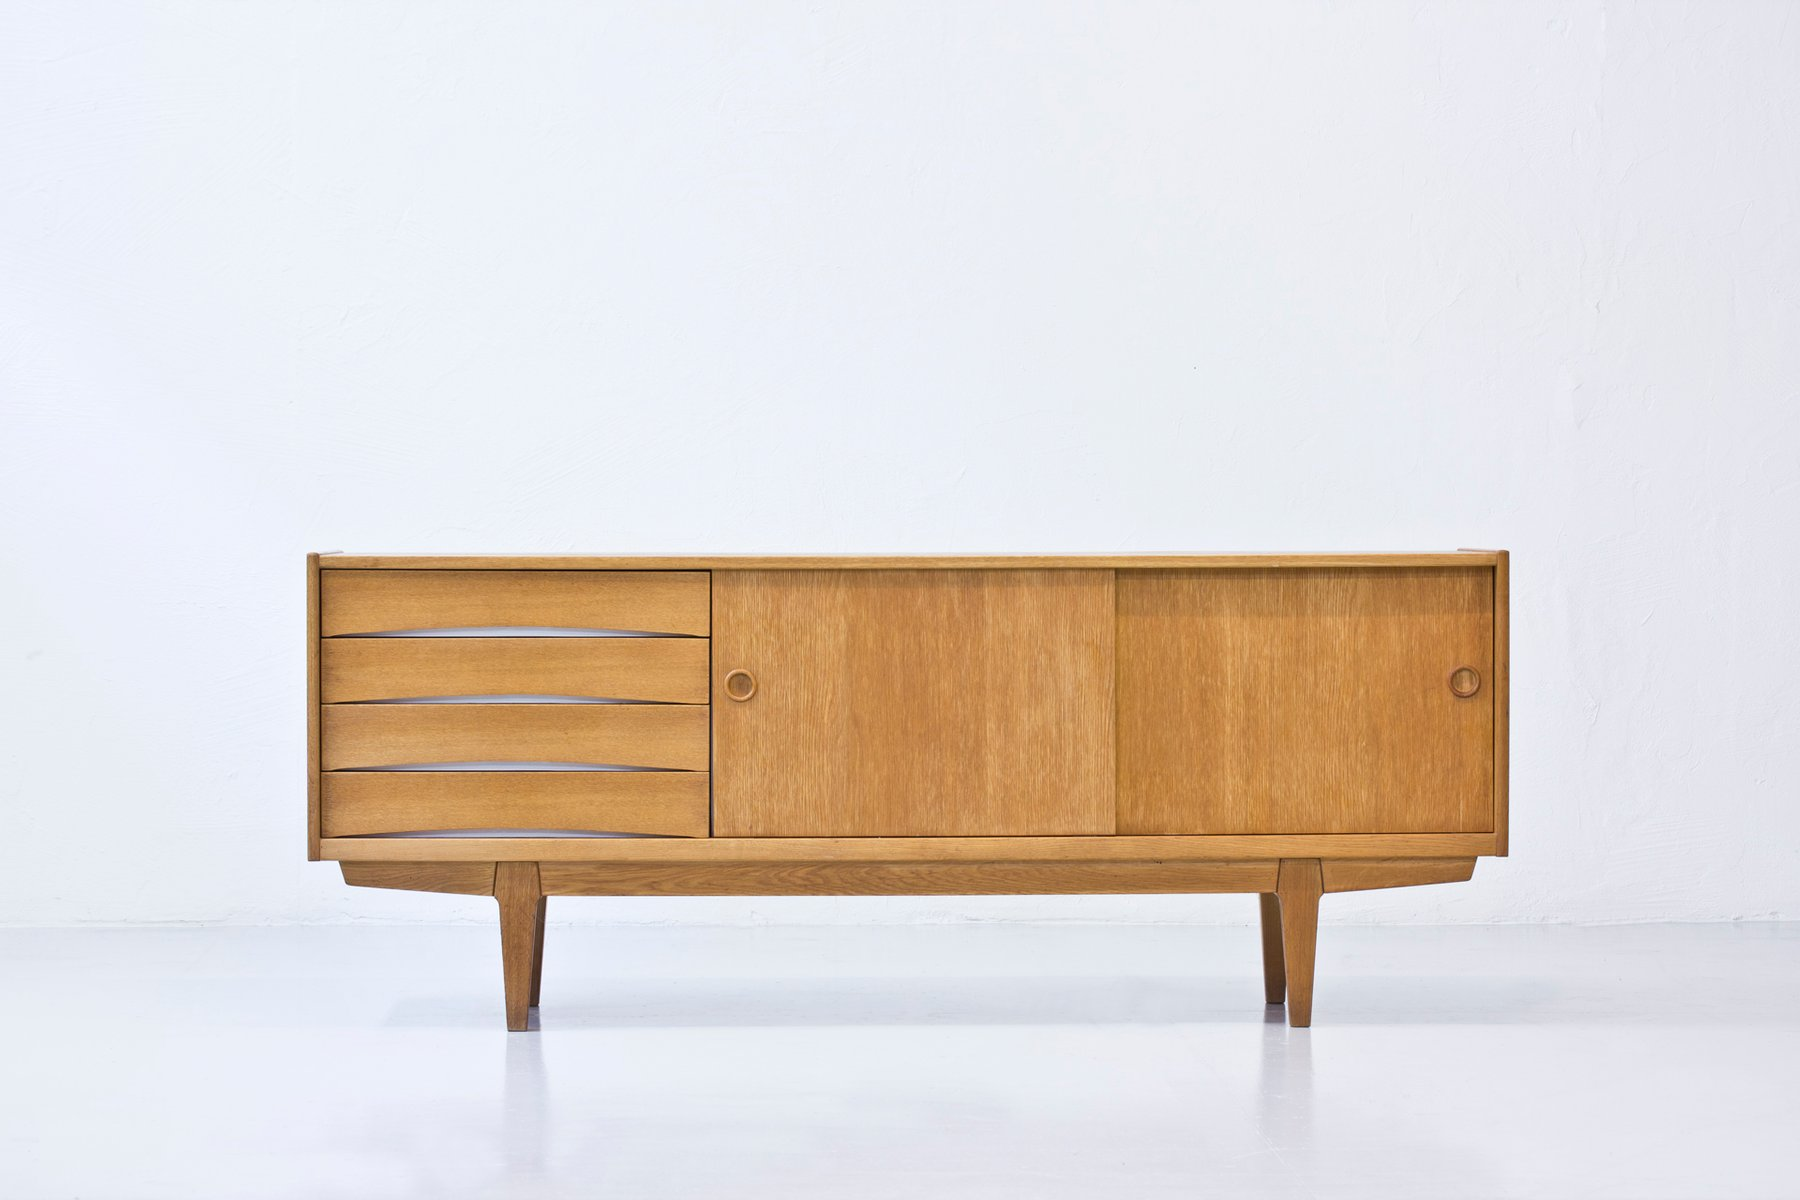 Ulv sideboard by eric w rtz for ikea 1950s for sale at for Sideboard ikea